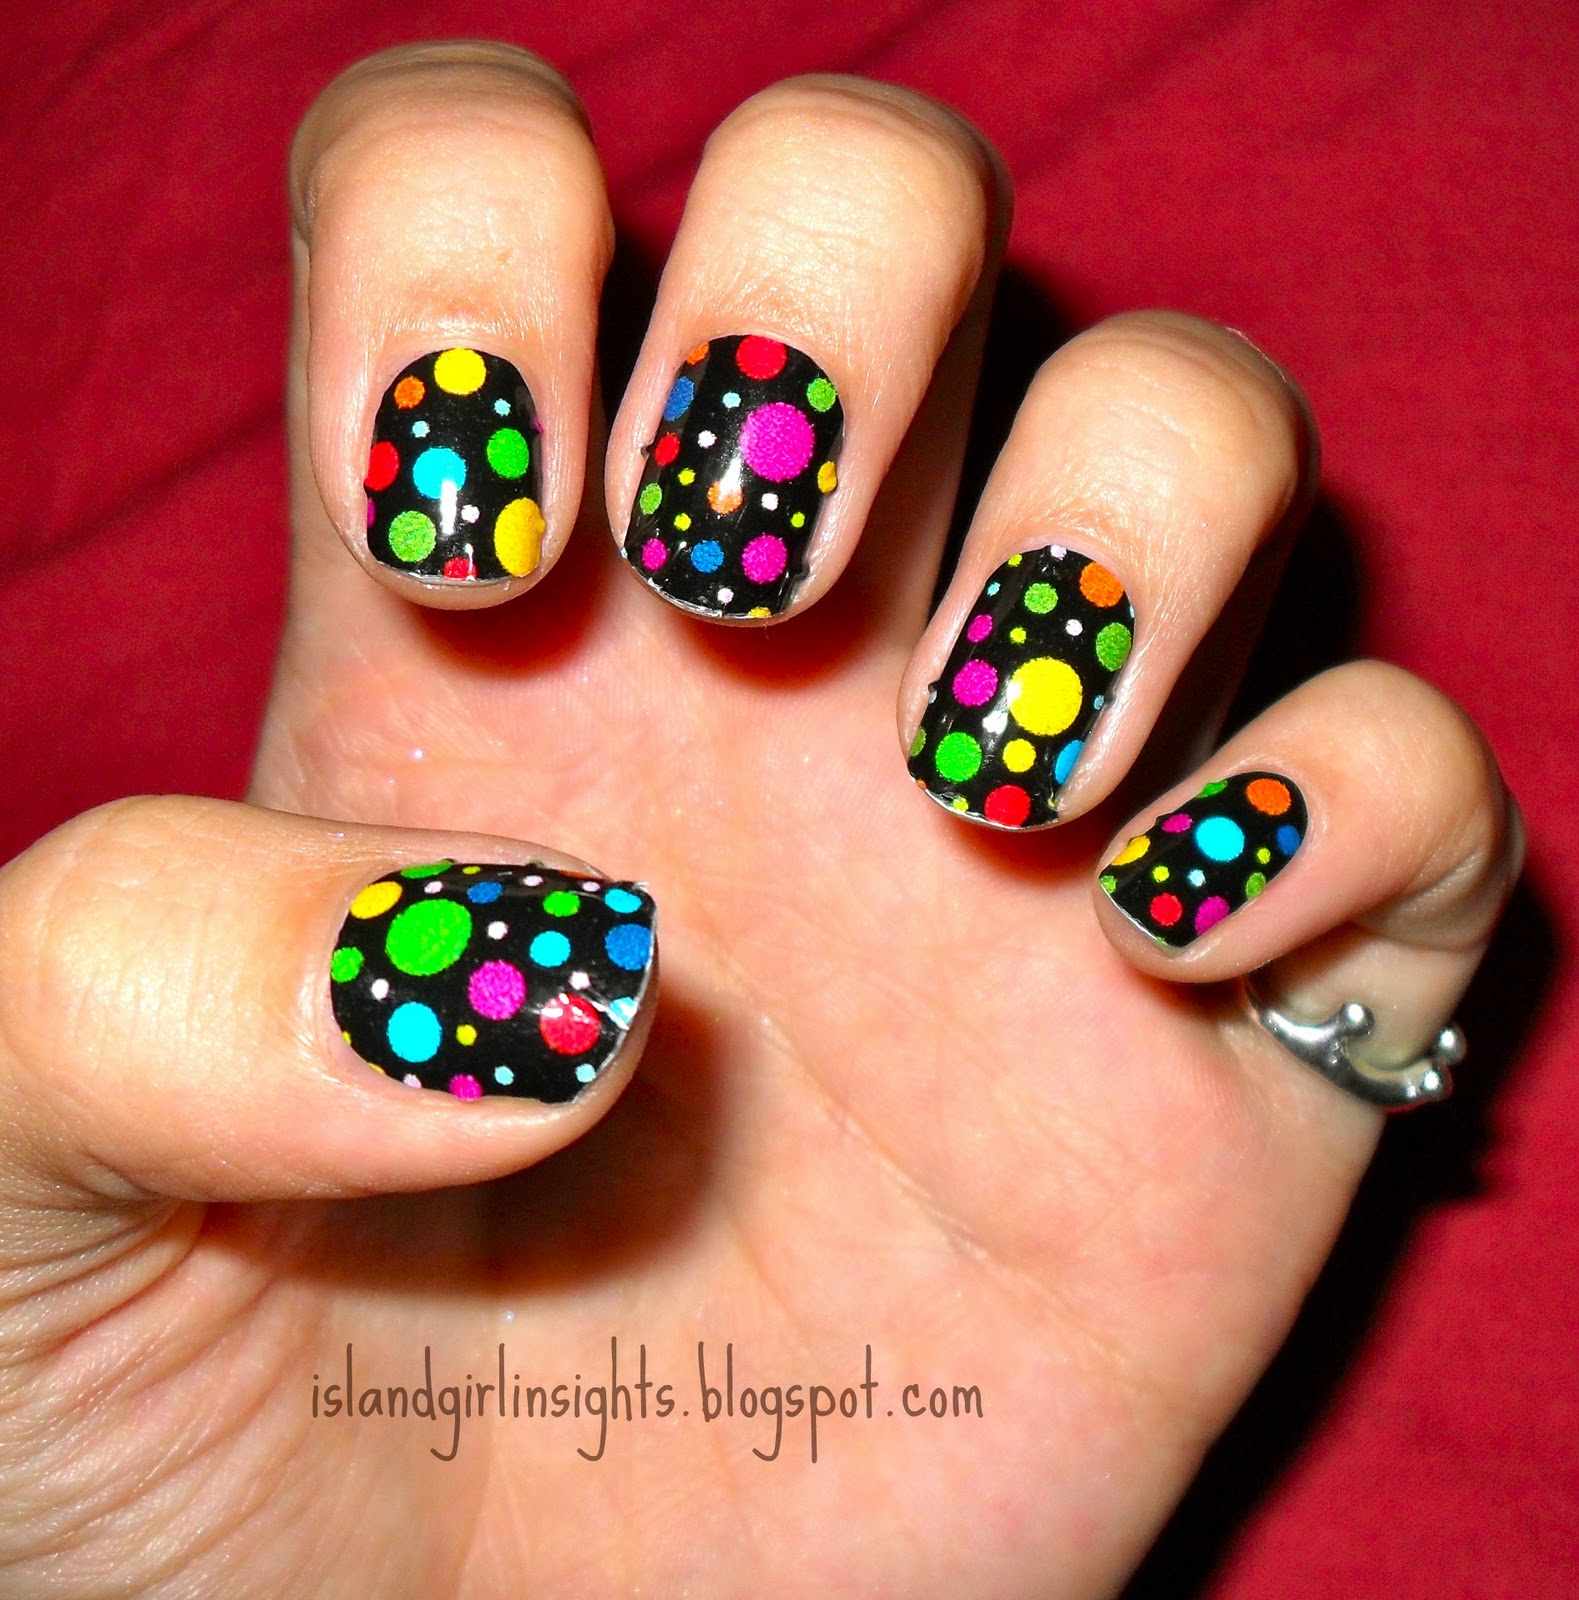 Just Rach // UK Fashion Beauty U0026 Lifestyle Blog NOTW - Children In Need Nail Rock Nail Wraps